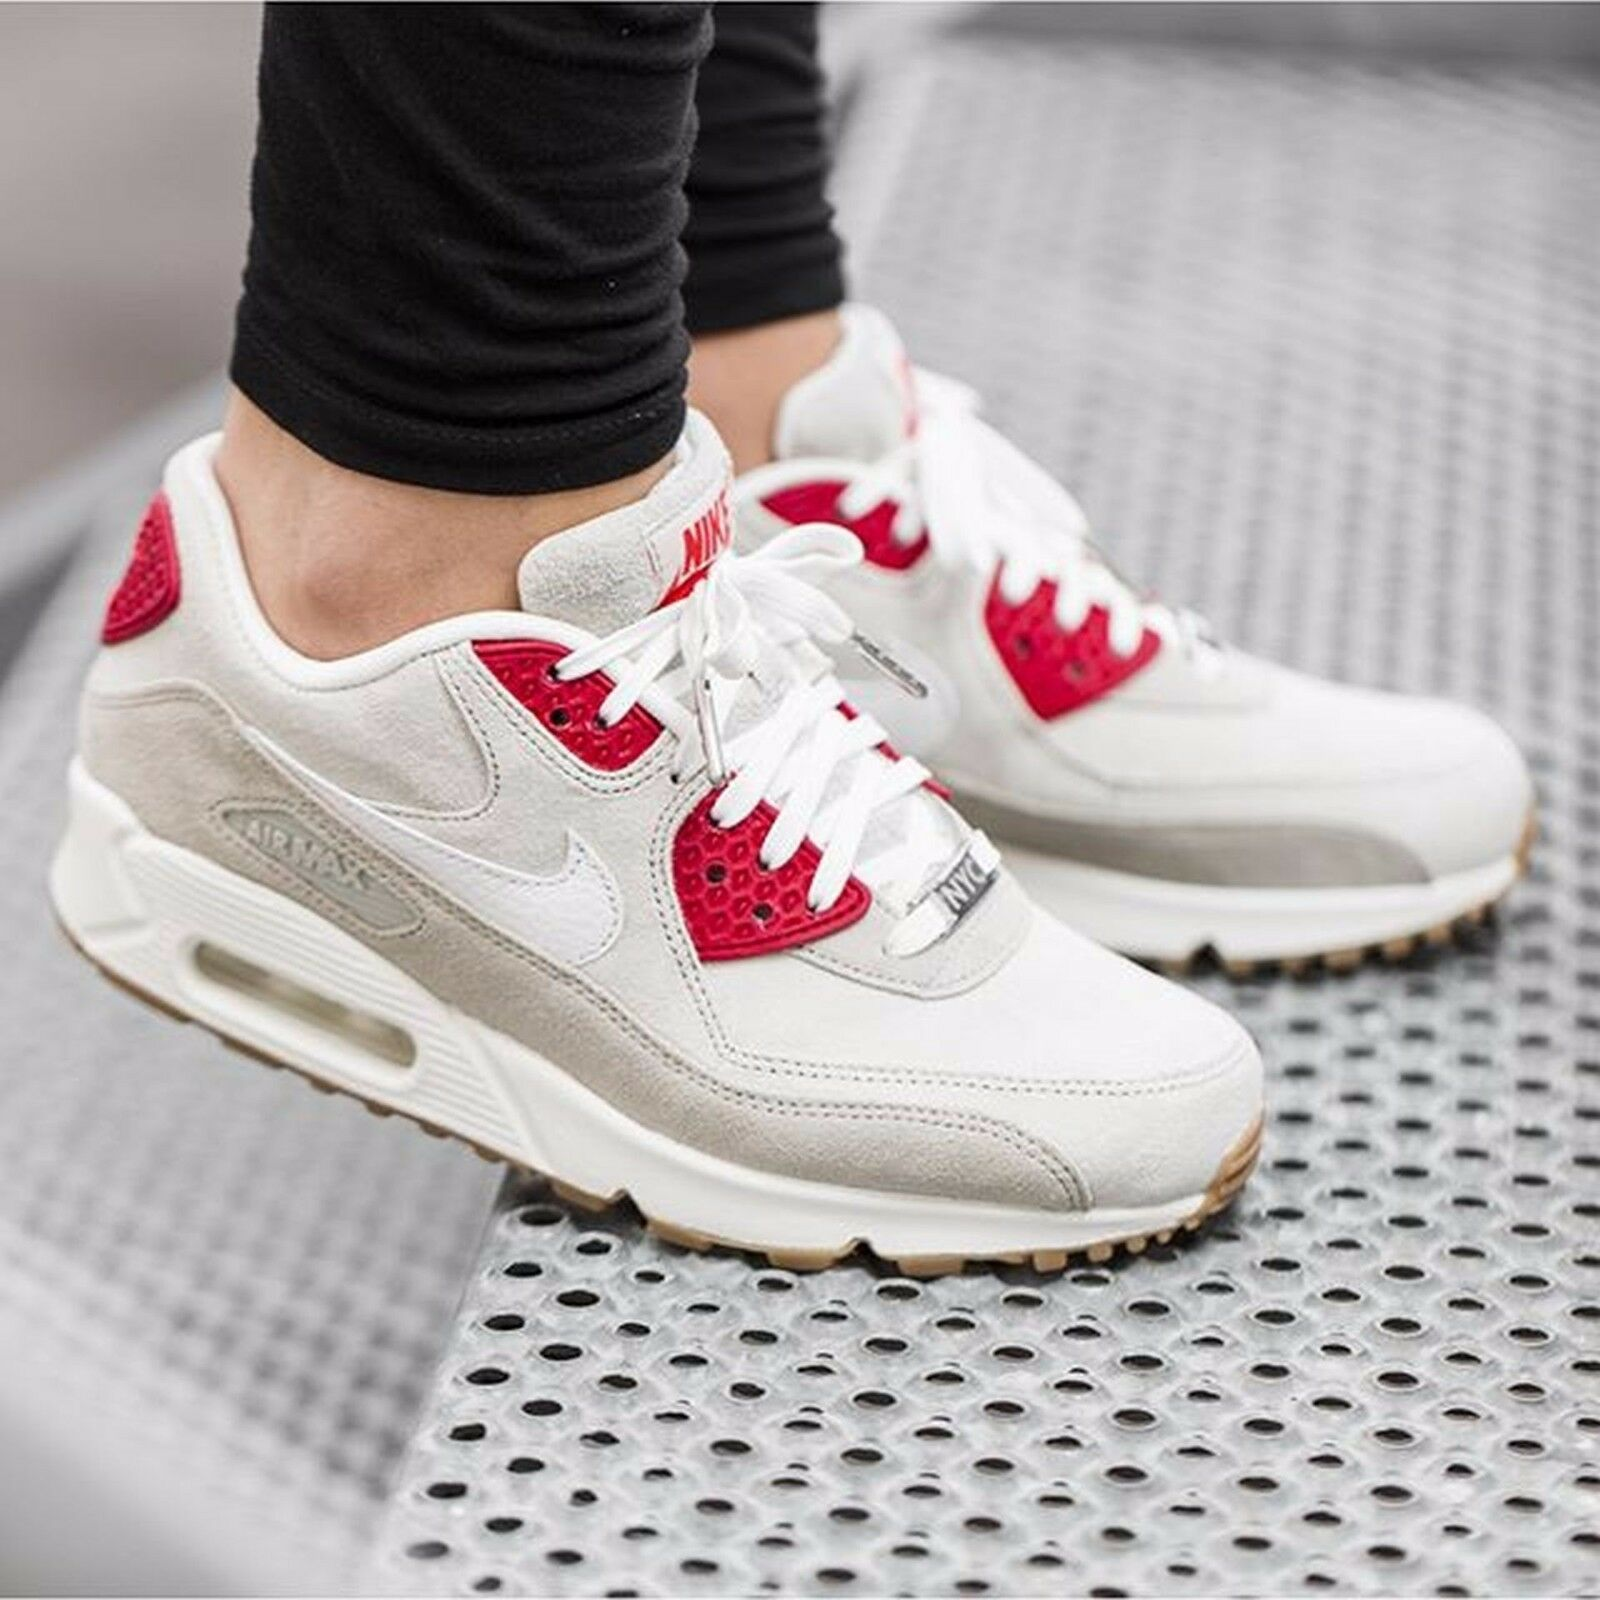 "NIKE Air Max 90 QS NYC ""Strawberry Cheesecake"" Wmn Shoes Sz 8.5 813150-200"